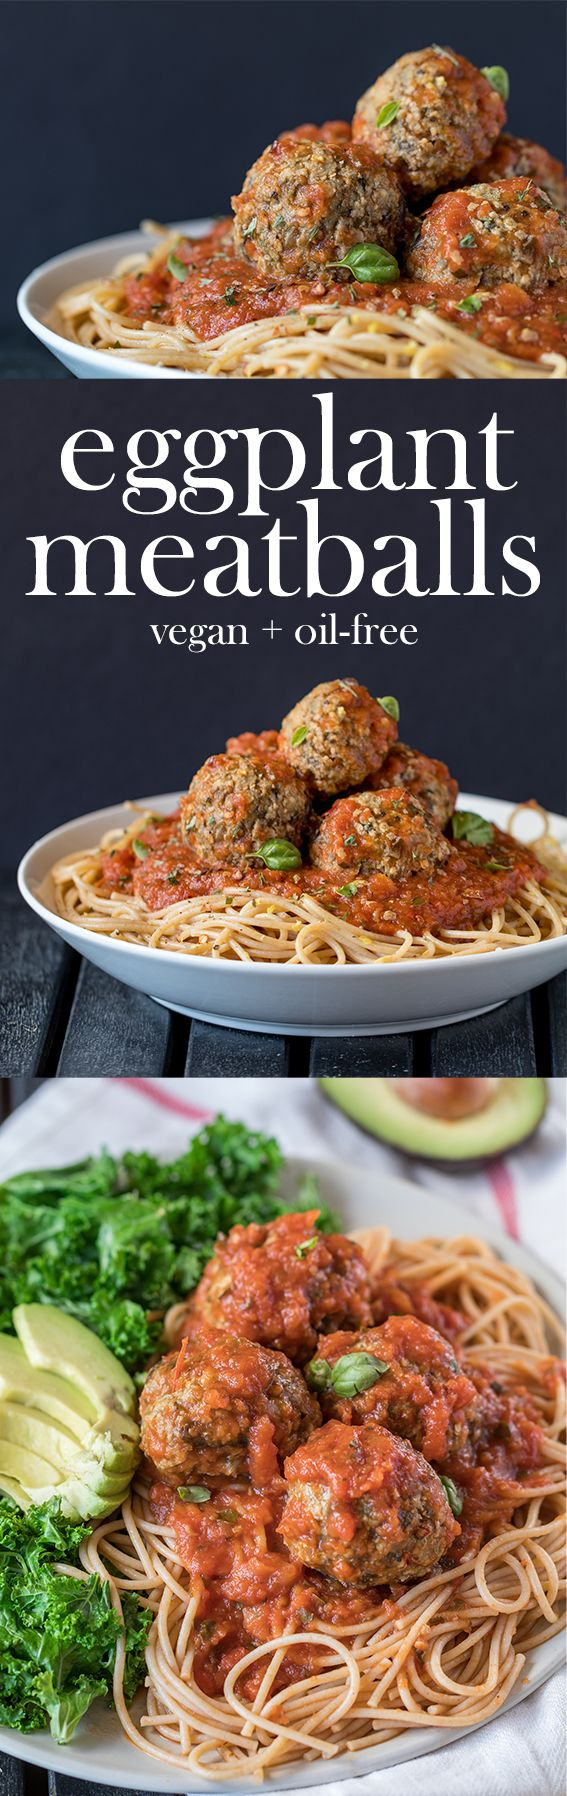 Vegan Eggplant Meatballs that are oil-free and packed with plant protein!   A hearty and savory flavor-explosion, and definitely THE must make recipe when you need to impress a crowd! #vegan #sweetsimplevegan #eggplantmeatballs